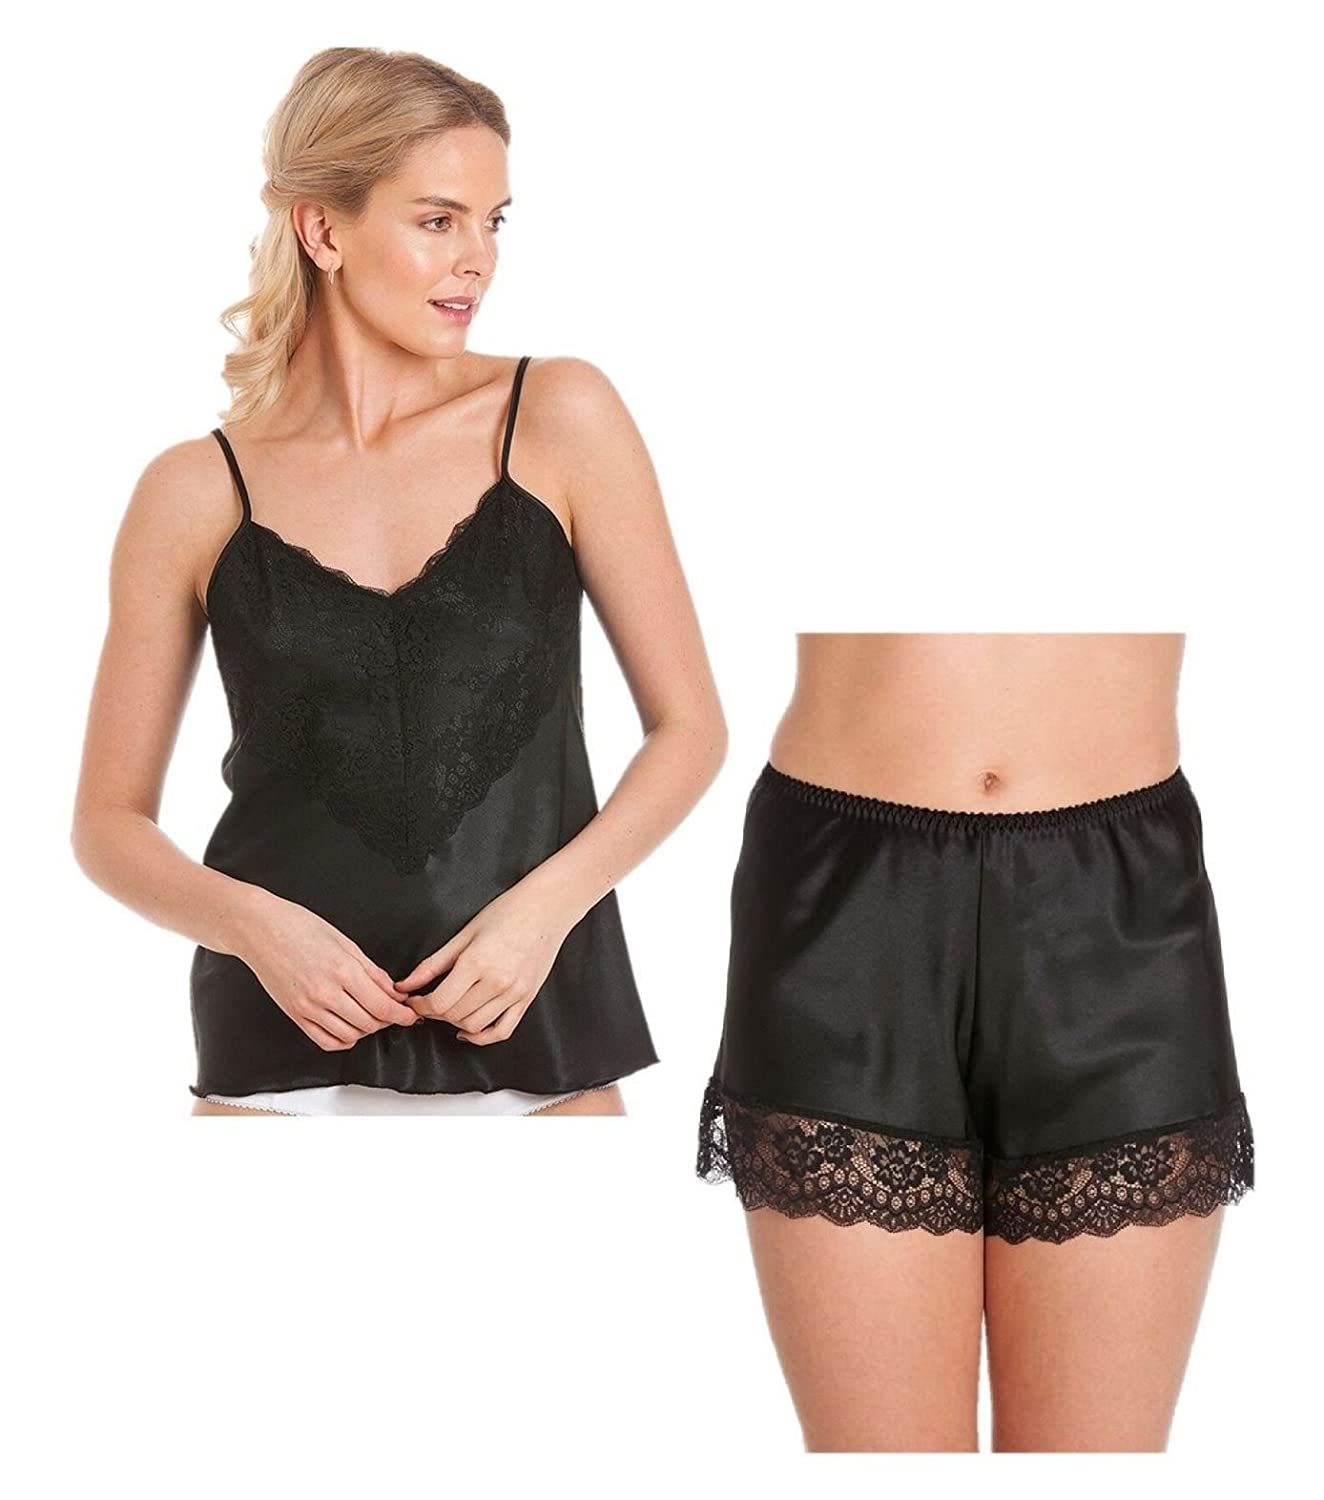 f432f4e01 Ladies Satin cami Set Camisole French Knickers Shorts Lace Retro Plus Sizes  at Amazon Women s Clothing store